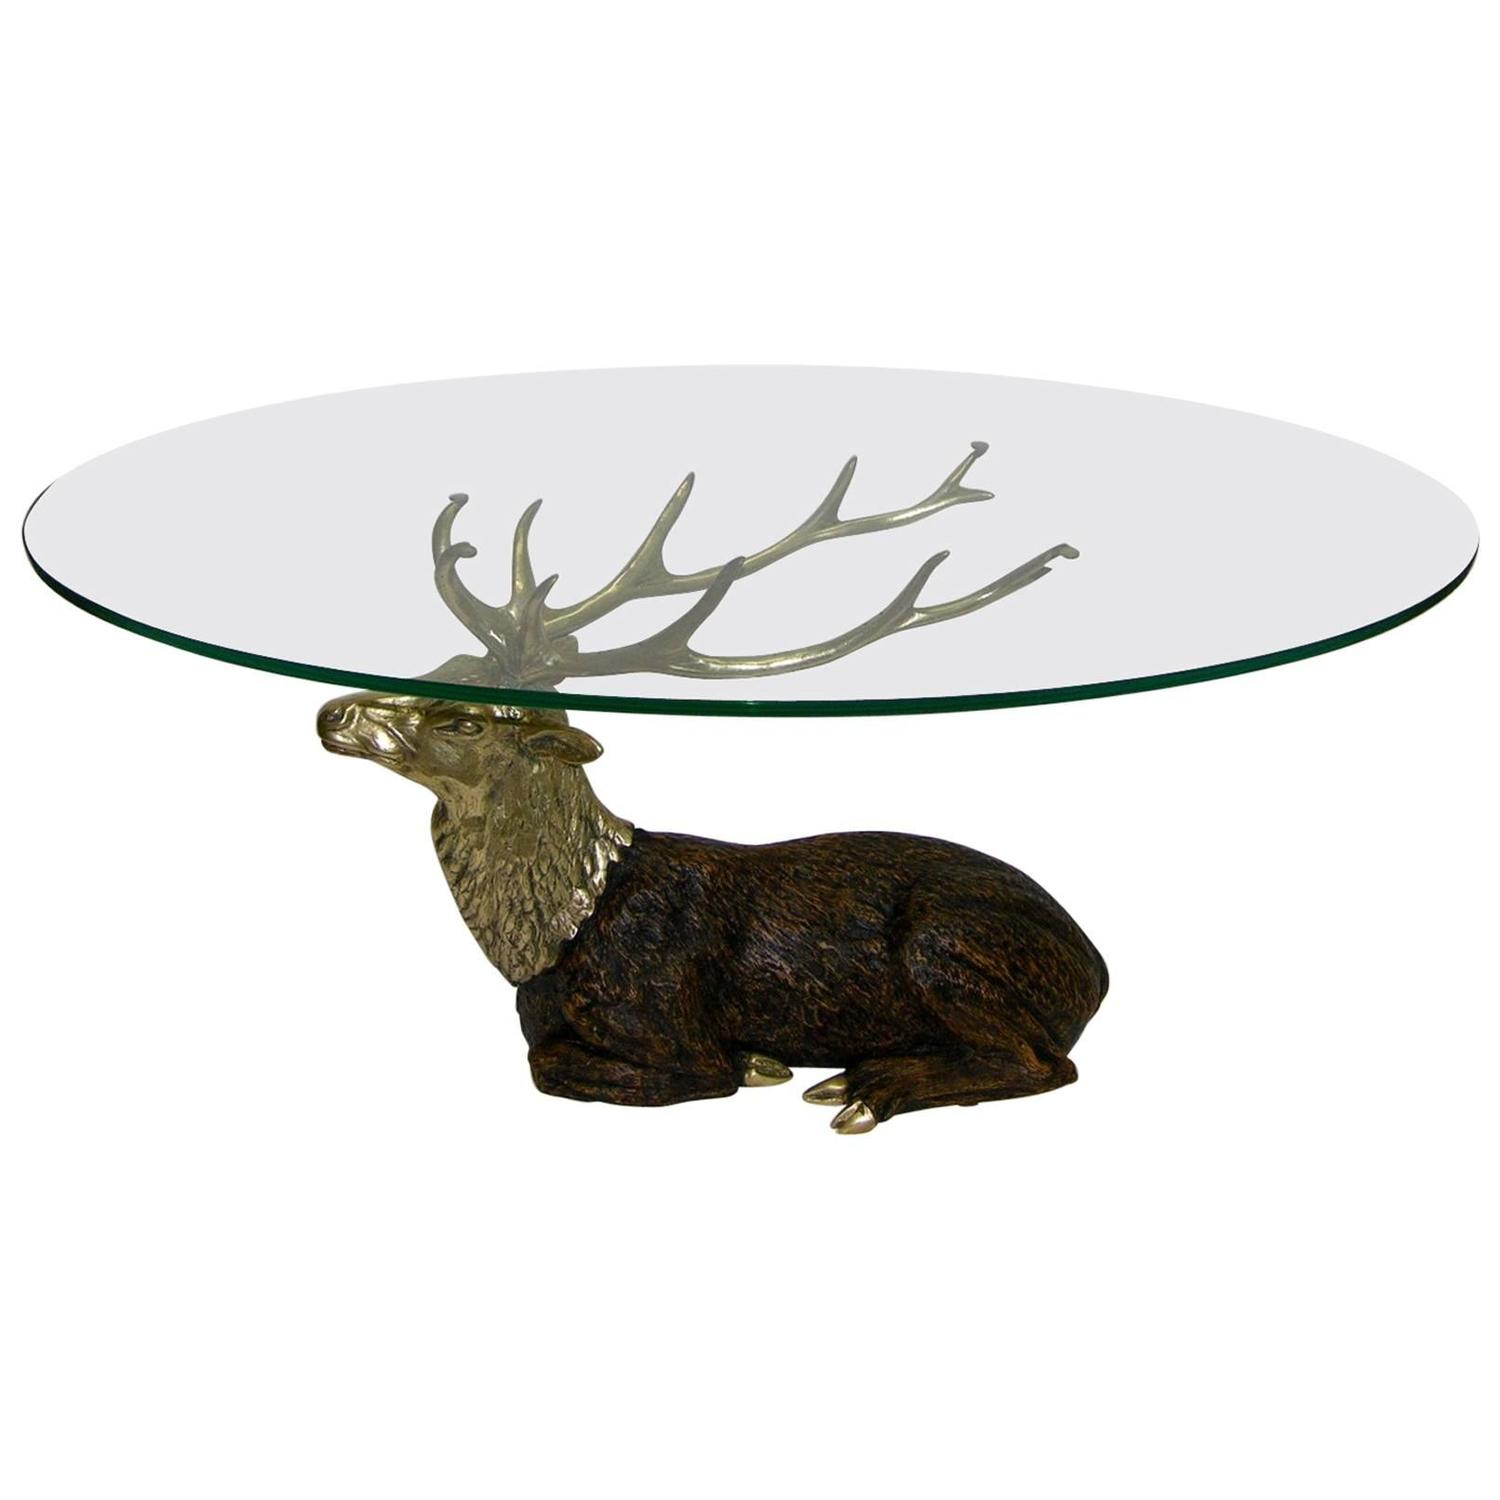 1970s Vintage Italian Deer Antler Oval Coffee Table at 1stdibs